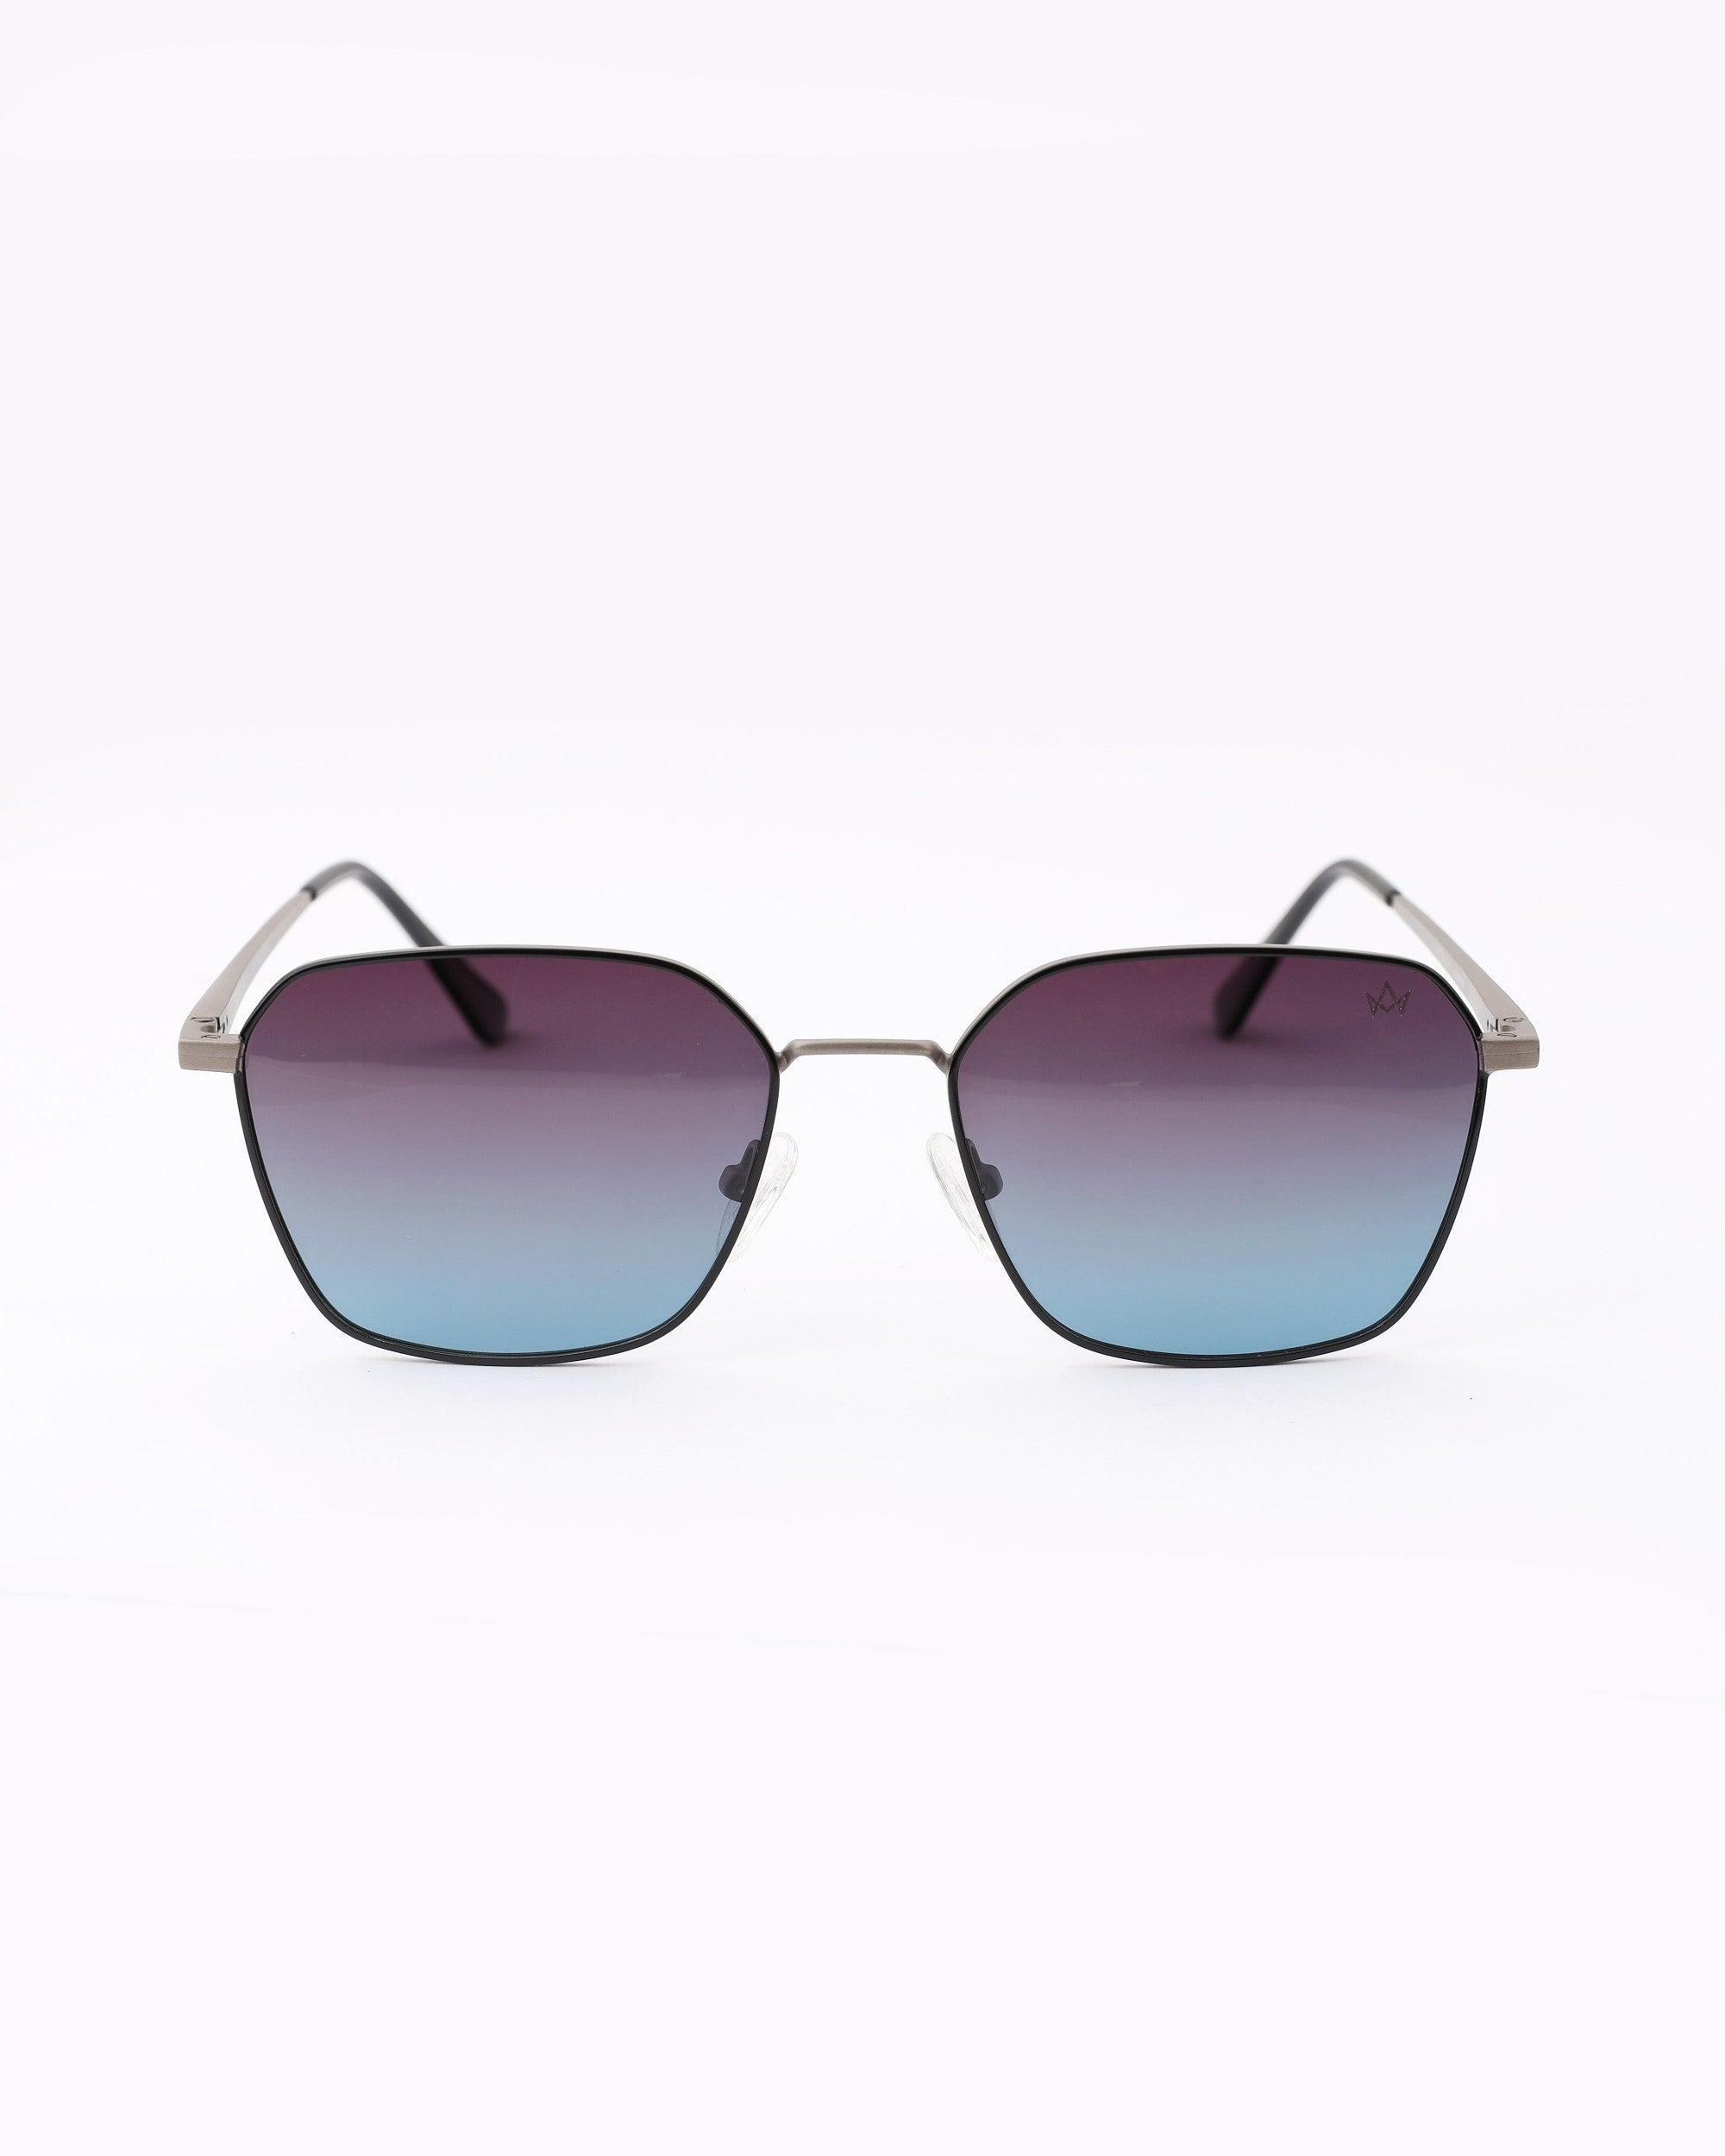 SOFT SQUARE AVIATOR SUNGLASSES